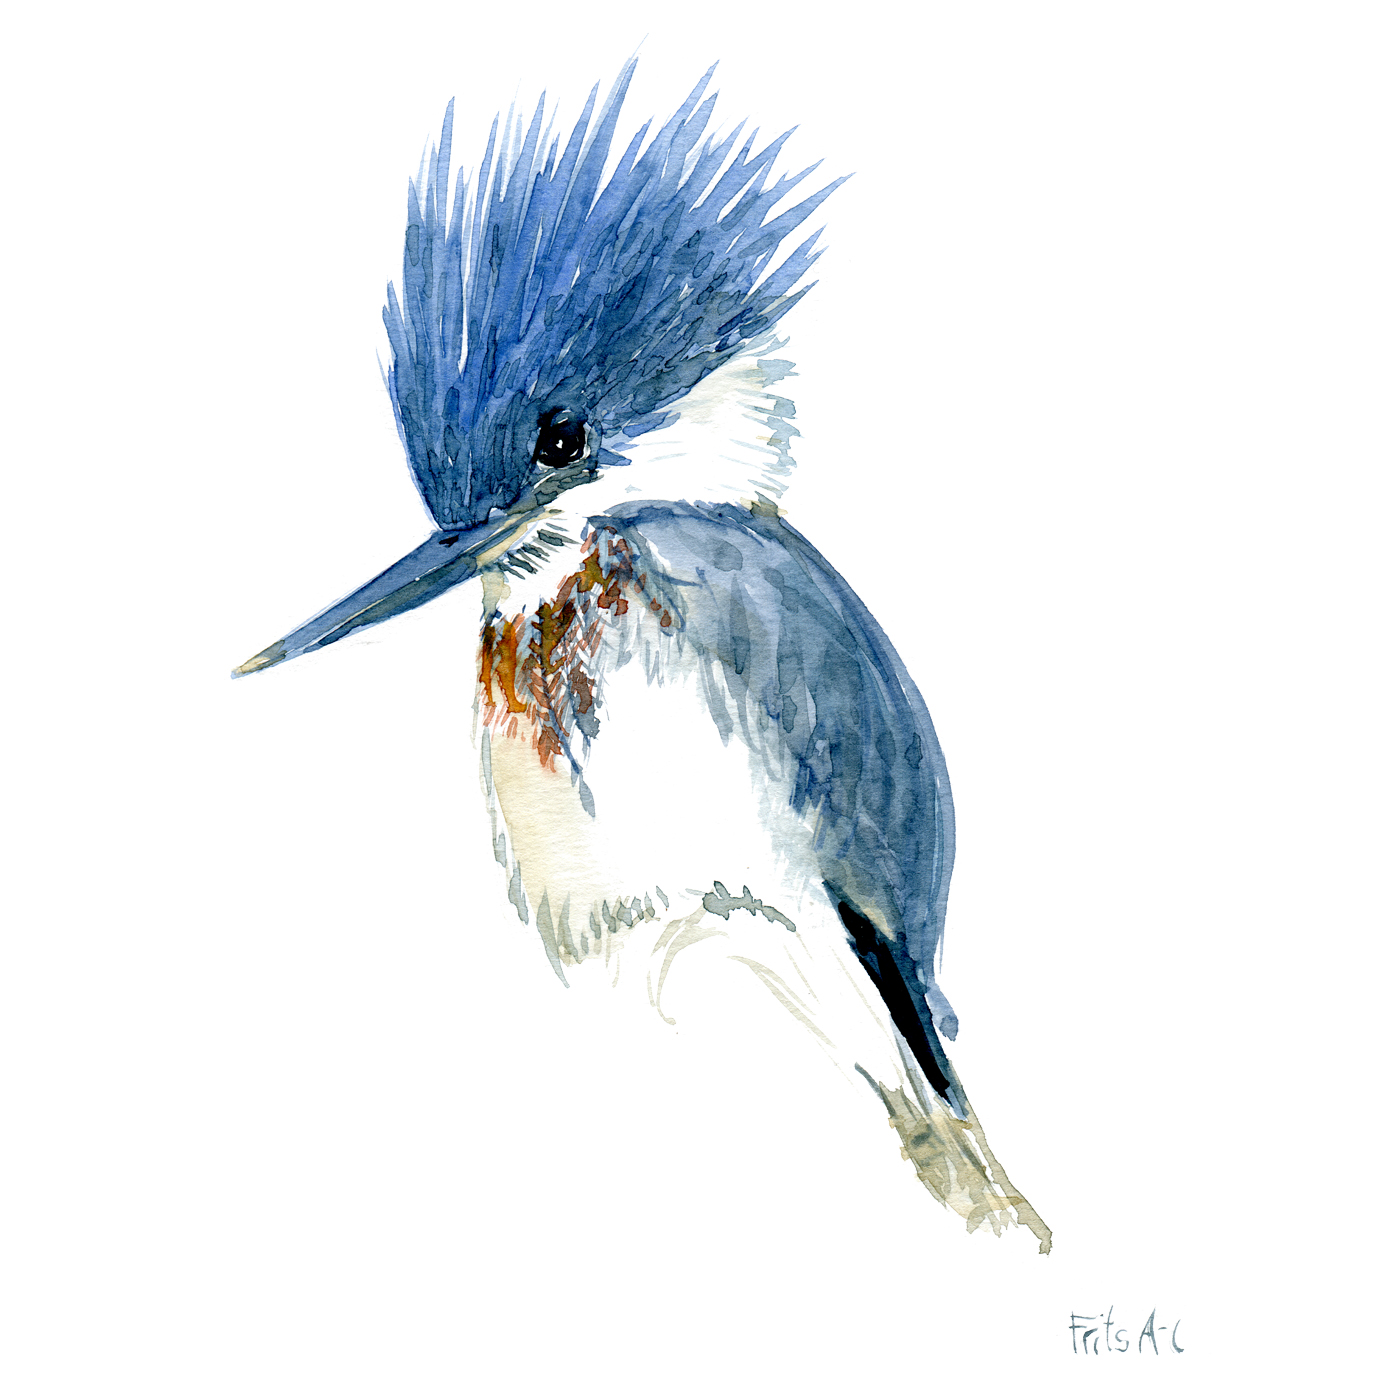 Watercolour by Frits Ahlefeldt